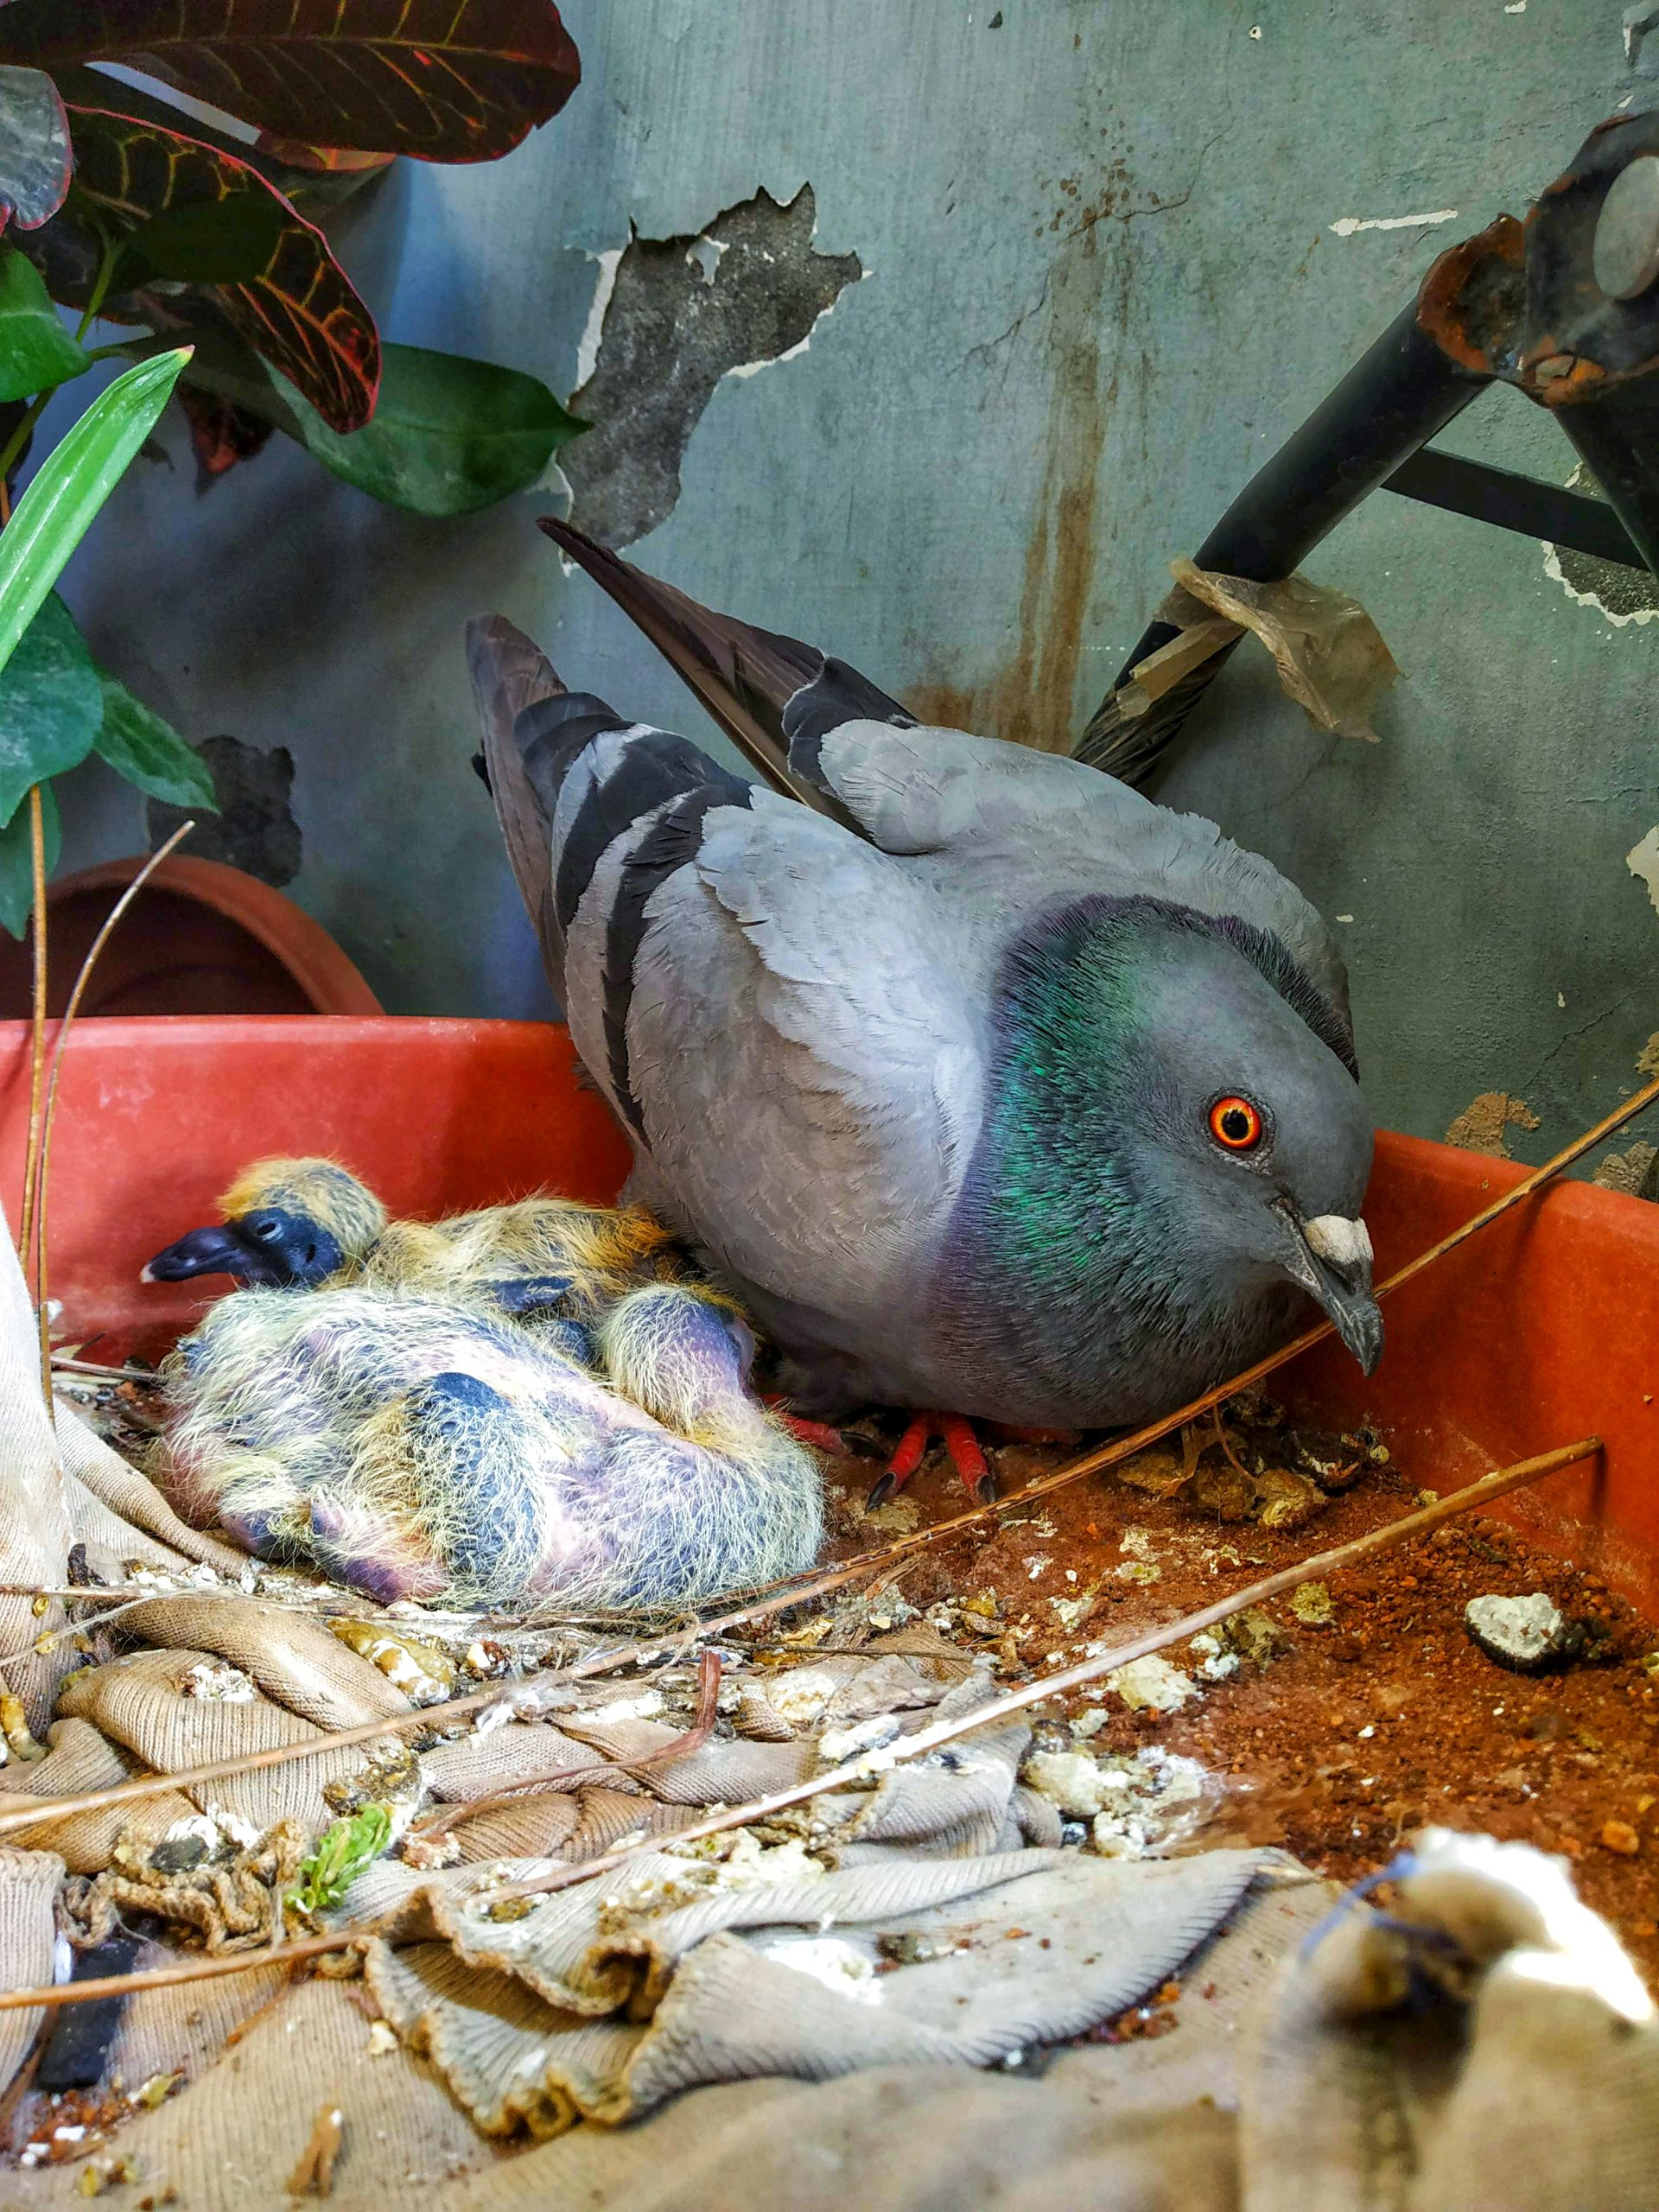 A pigeon with squabs